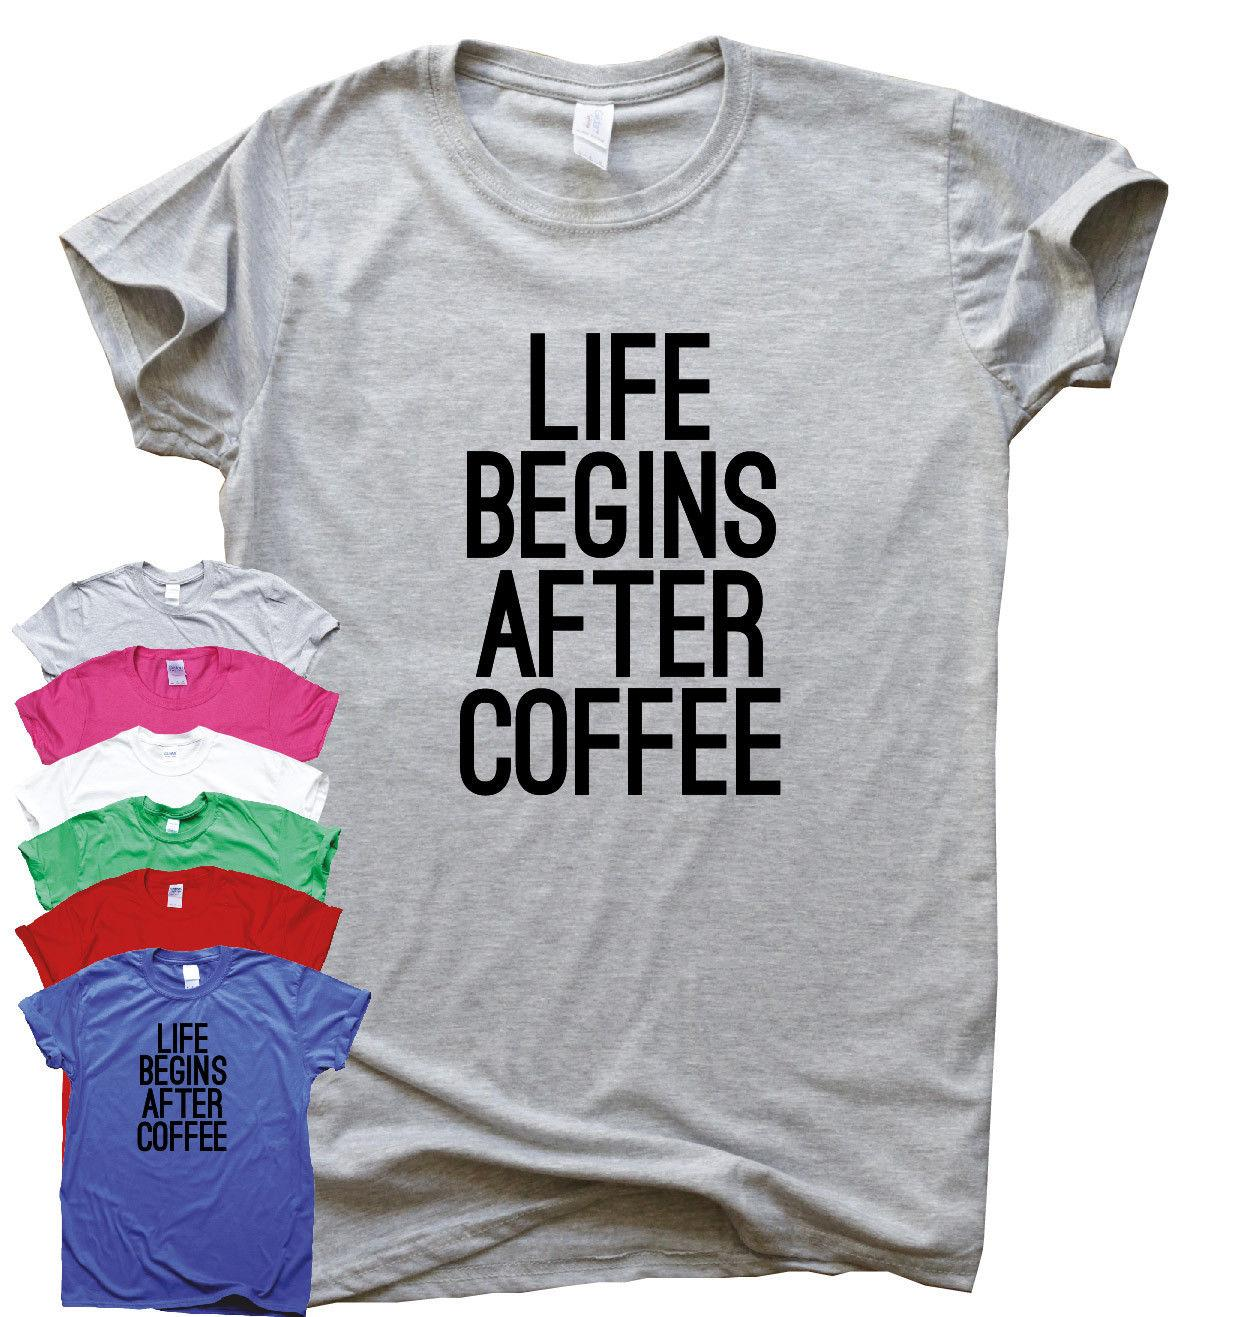 81524ca20f Life Begins After Coffee Funny T Shirts Mens Humour Gift Womens Sarcastic  Slogan Funny Unisex Casual Tshirt Gift Funny Tshirts Long Sleeve Shirts  From ...